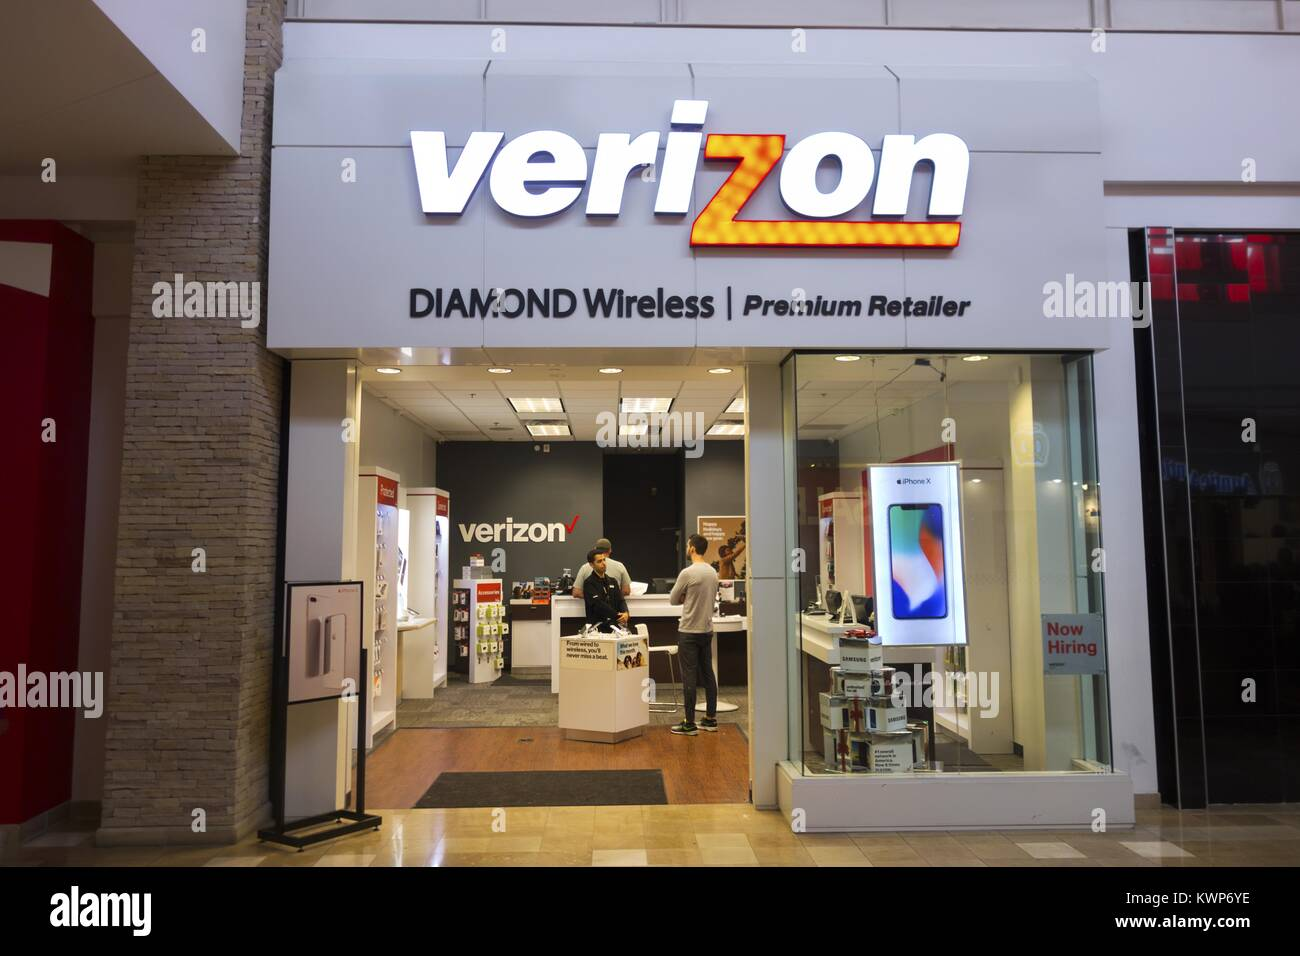 Verizon Wireless Store Dulles Town Center Wire 800pxboeboeledswitchledbreadboardjpg Business Stock Photos Images Alamy Rh Com